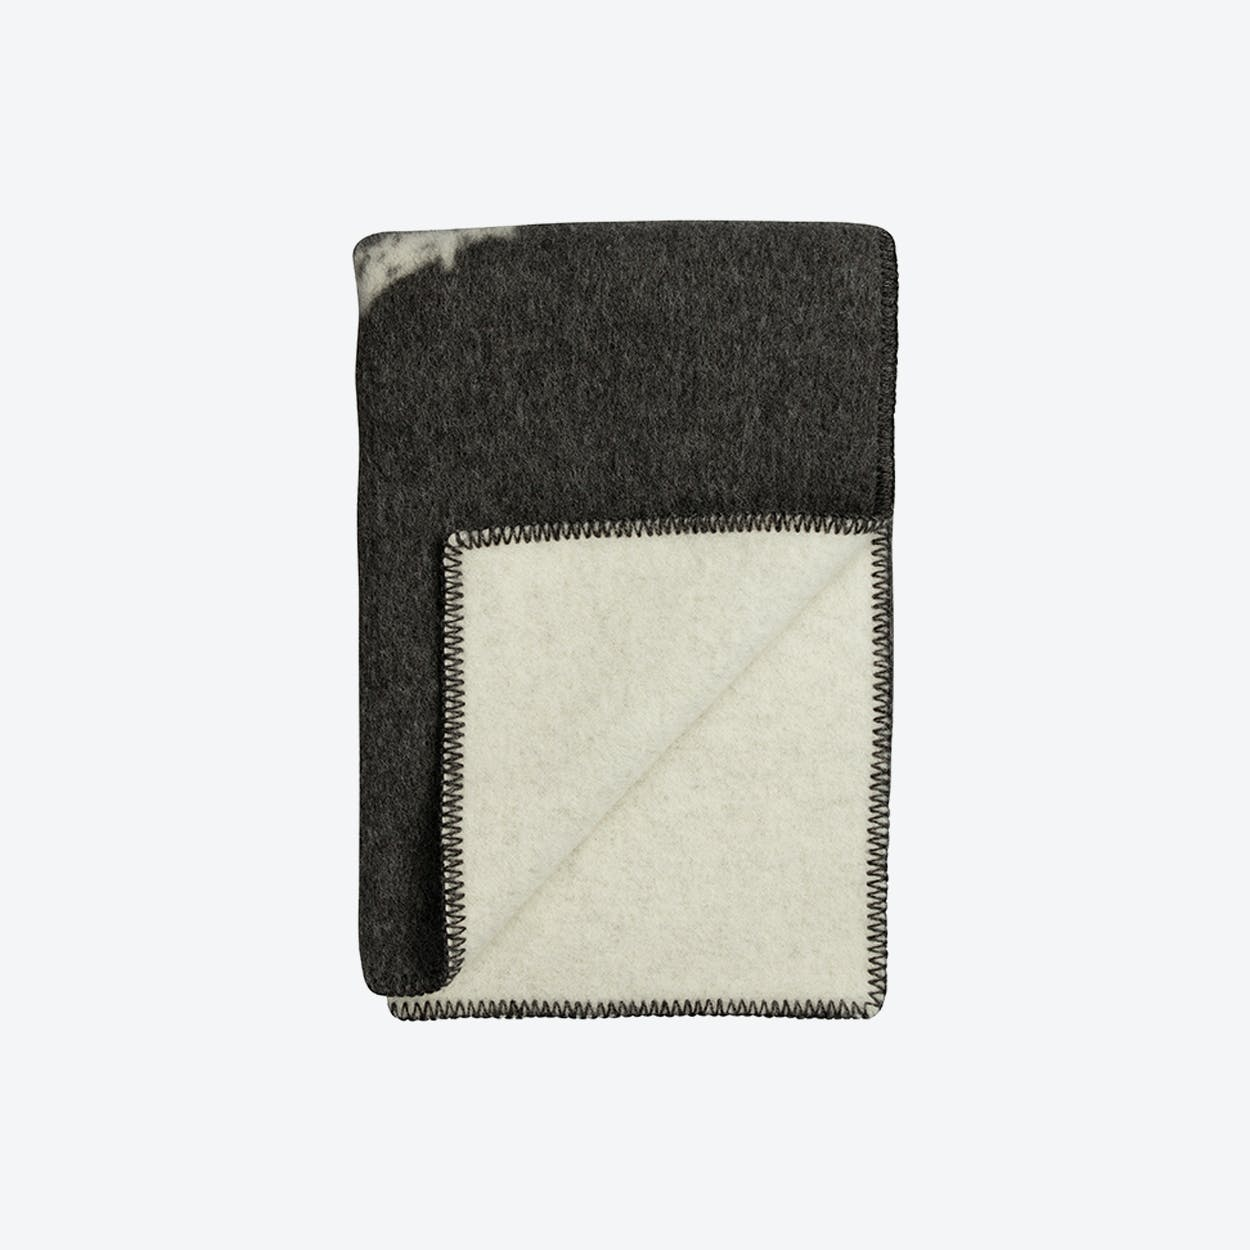 Melgaard Lambswool Throw in Grey/Natural